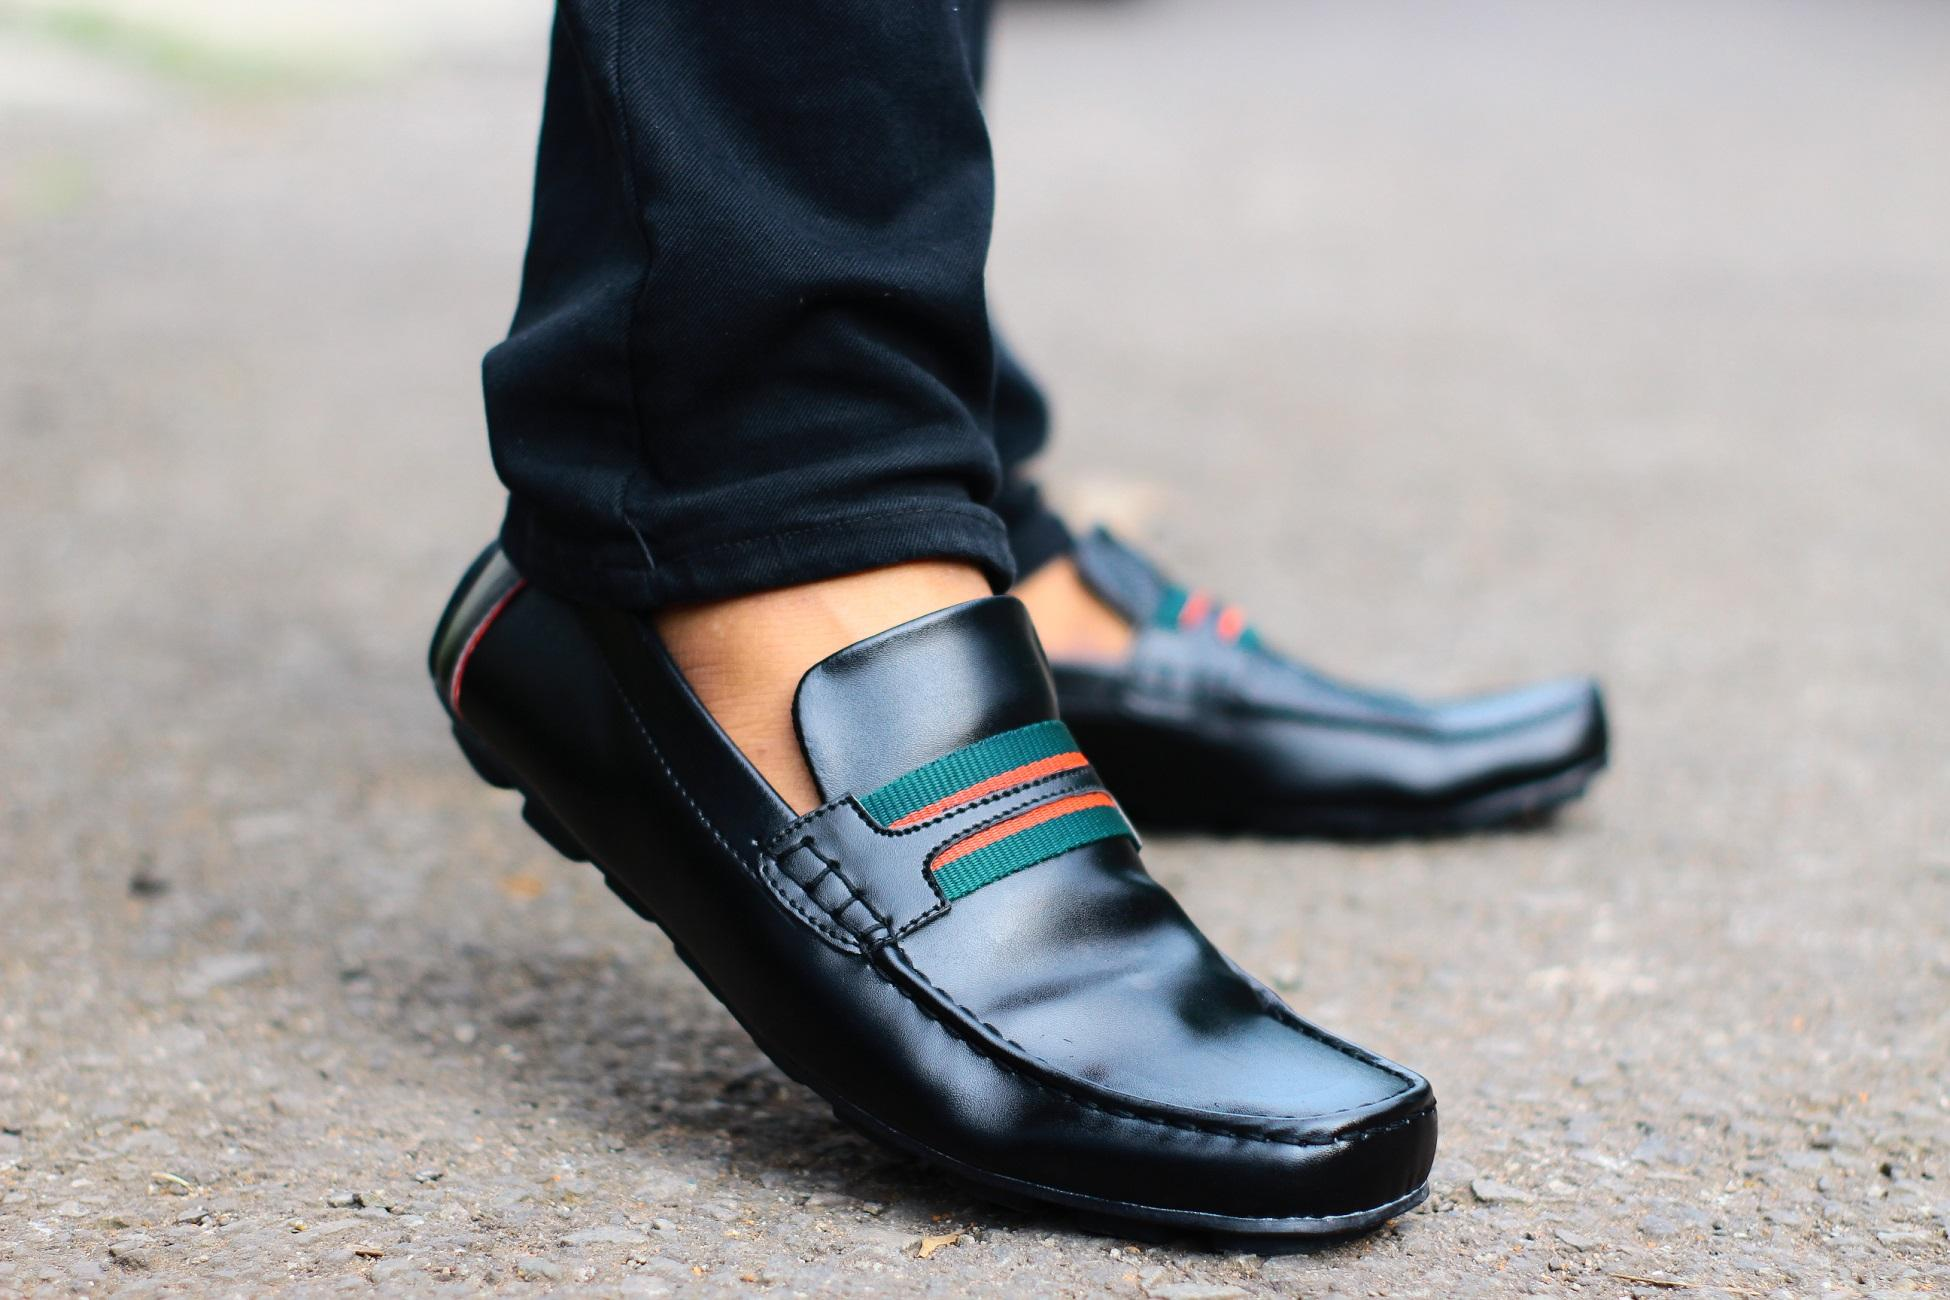 Sepatu Slip On Loafer Pria D Island Shoes Moccasine Lacoste Suede Blue Kantor Casual Slop Loafers Formal Santai Kasual